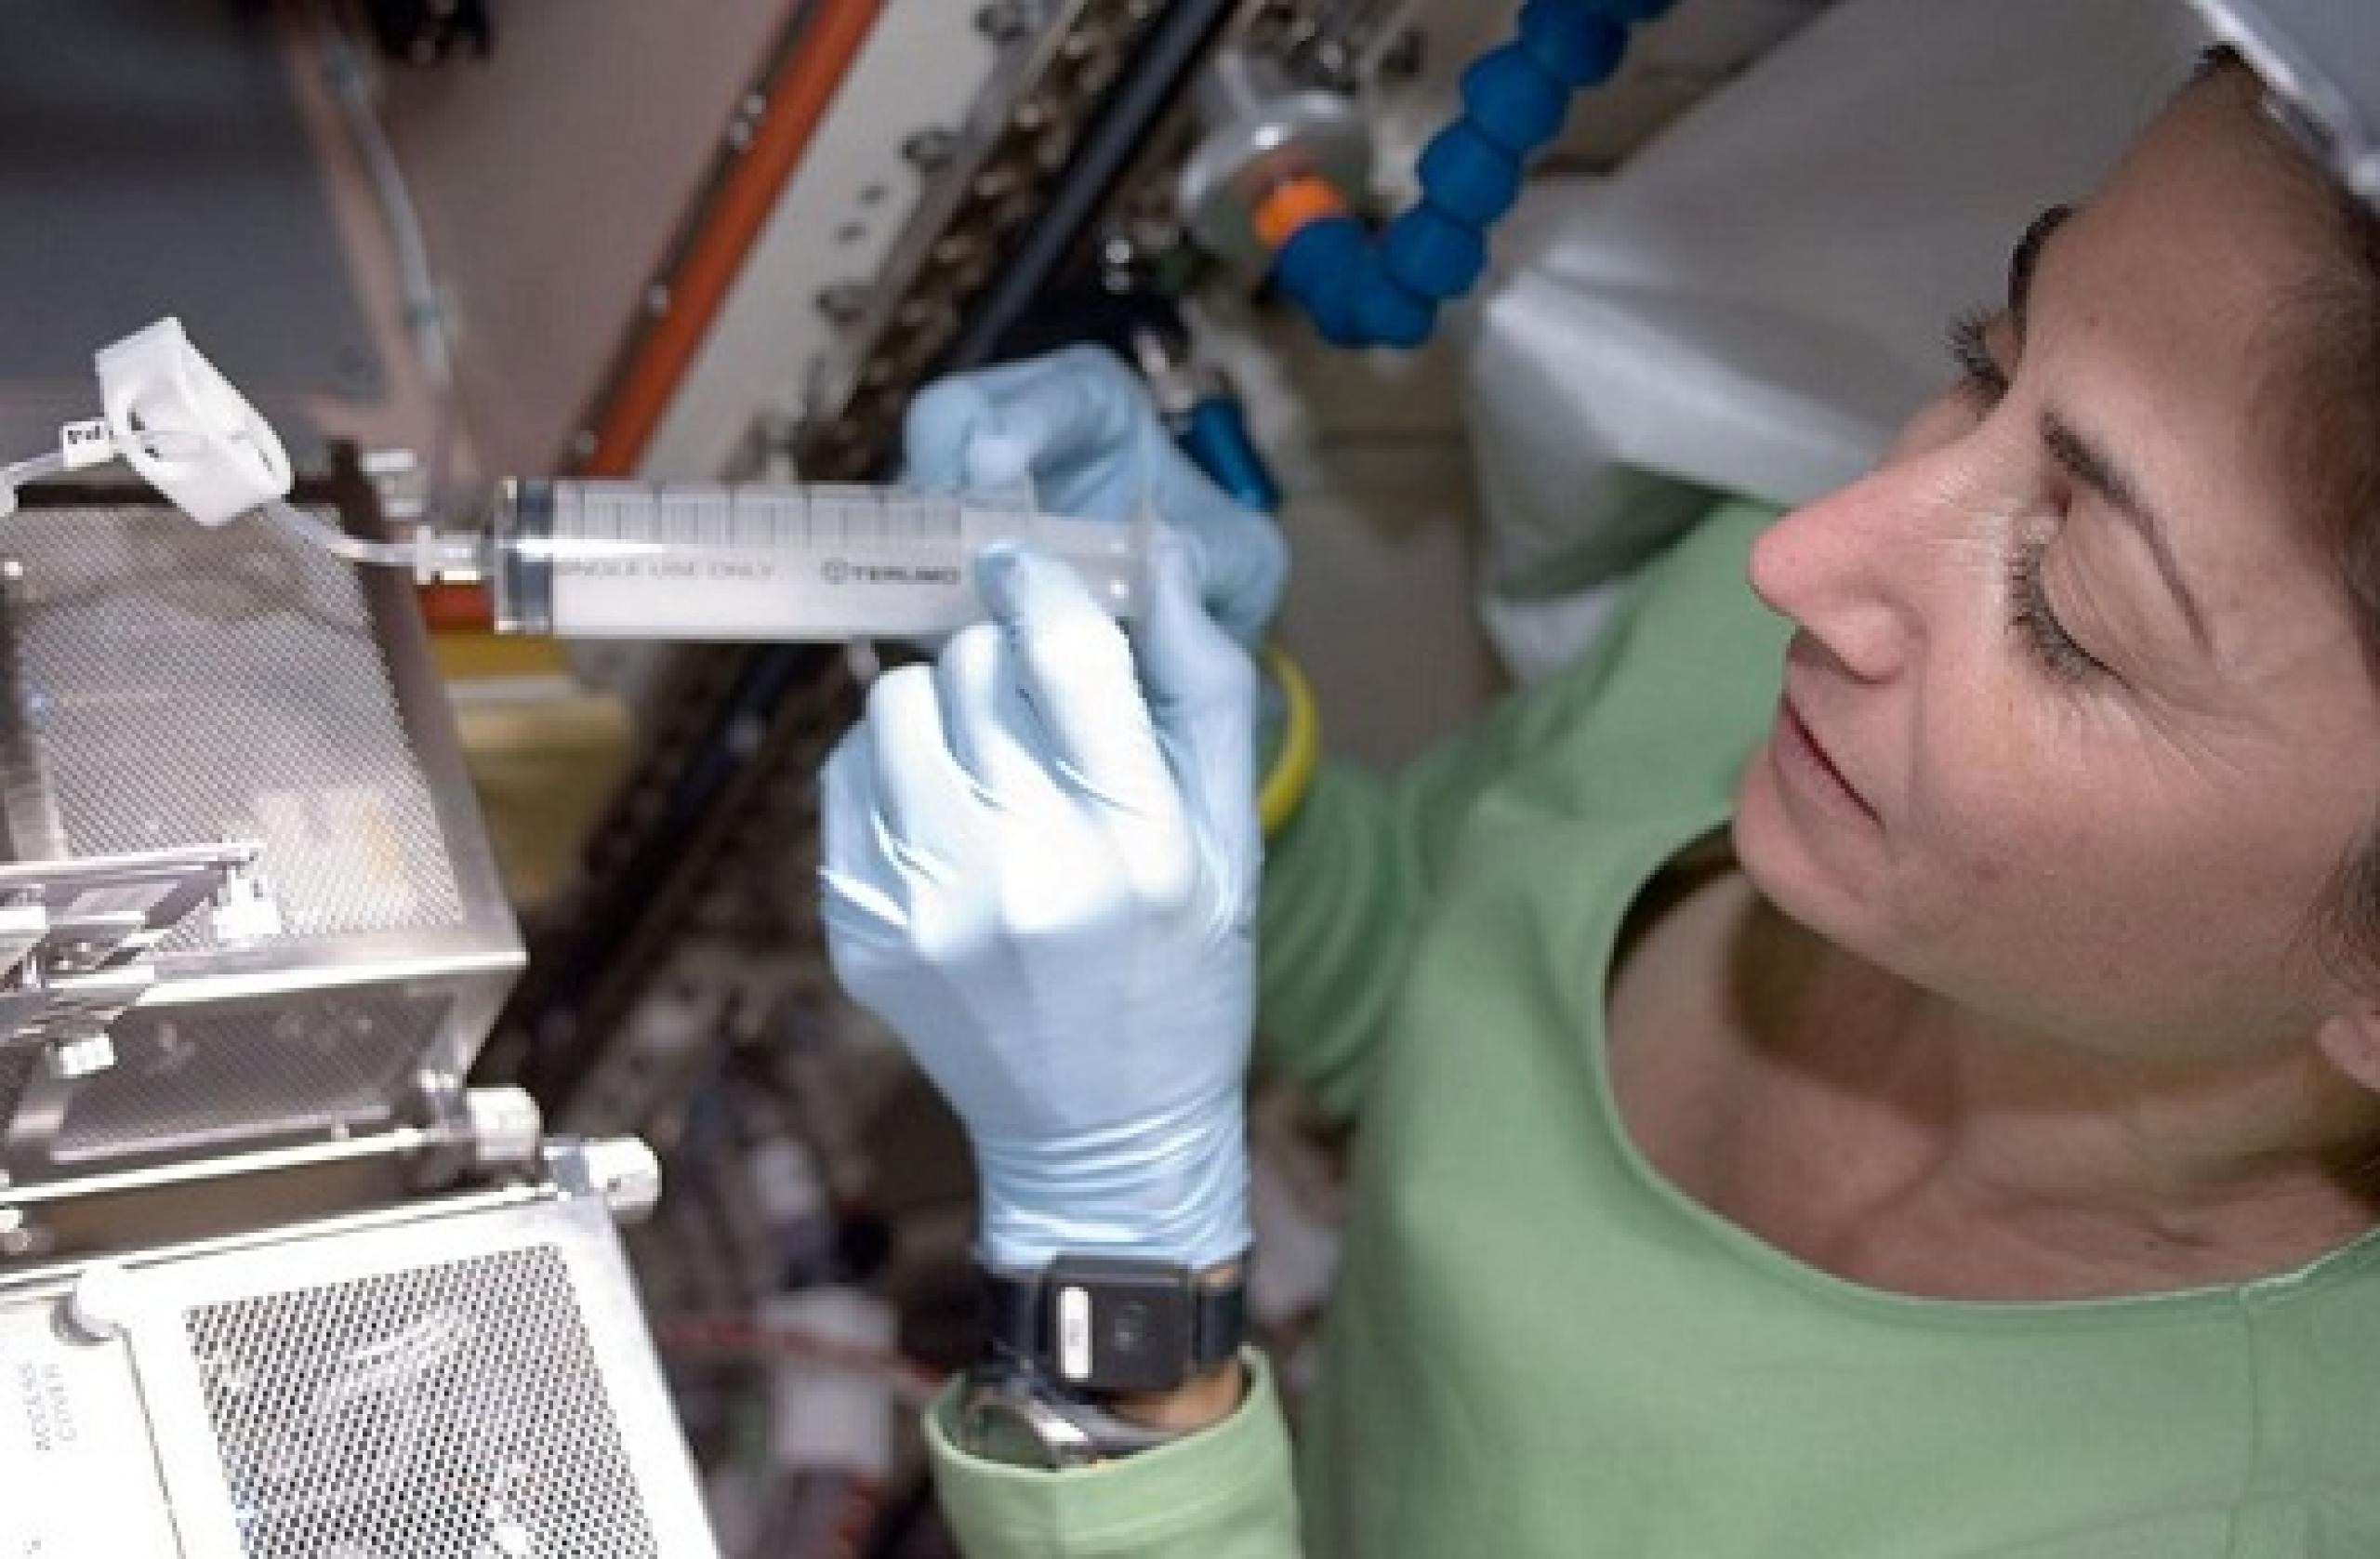 Woman in laboratory holding syringe connected to metallic equipment.